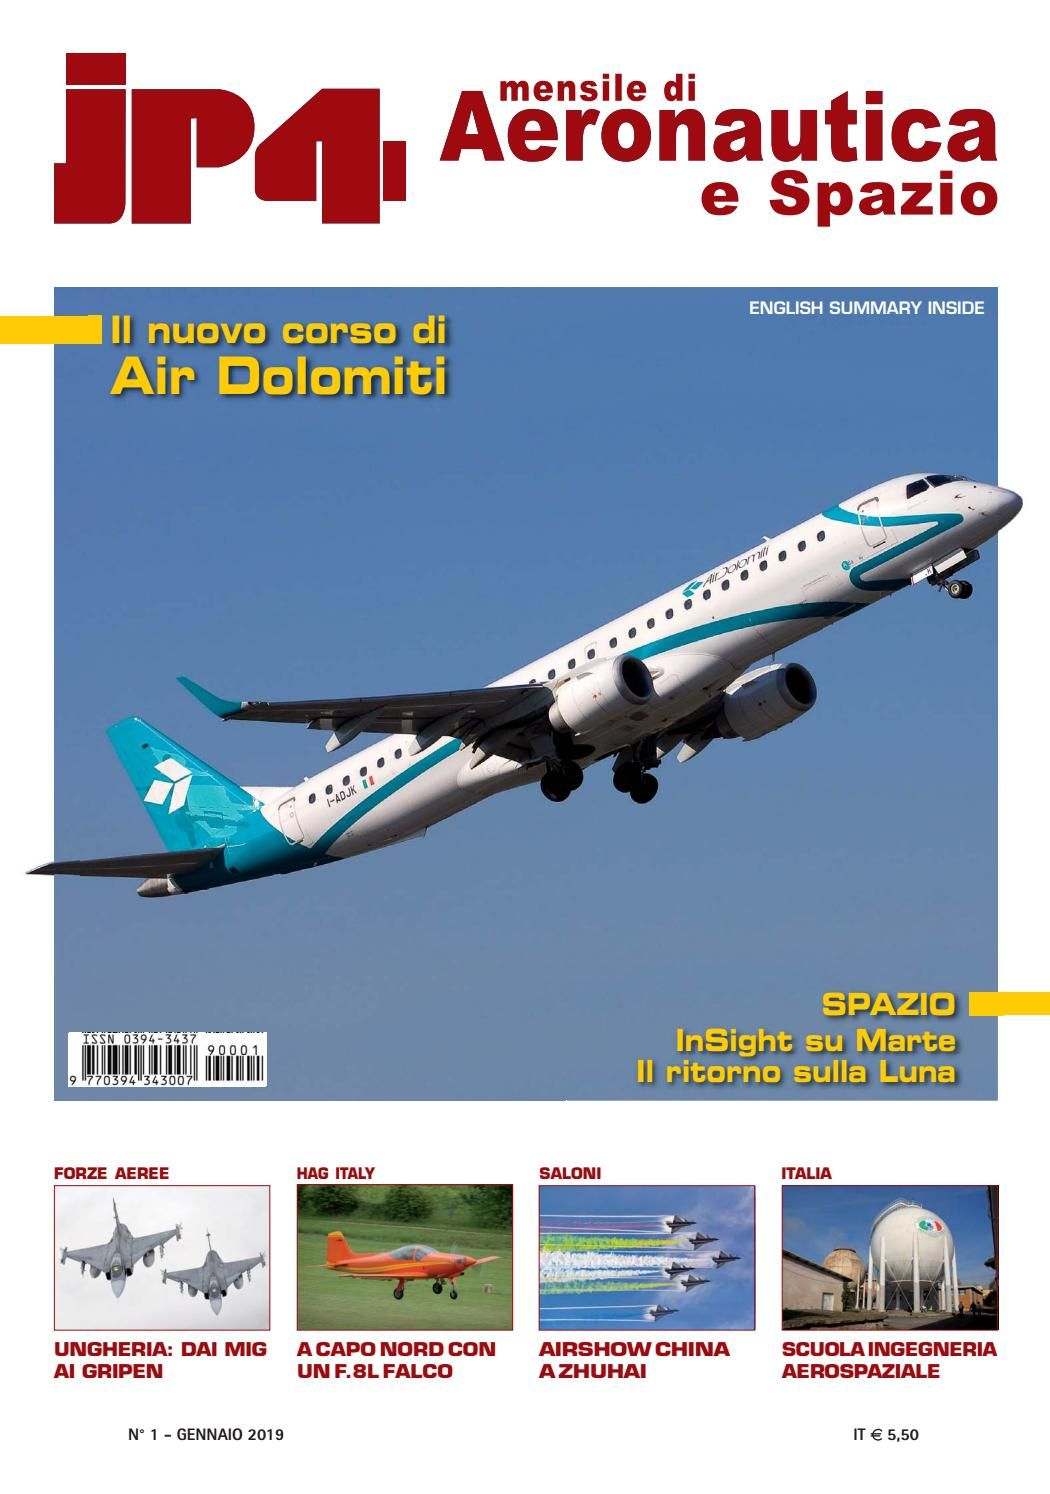 Jp4 2019 01 Air serbia, Digital publishing, Newspapers